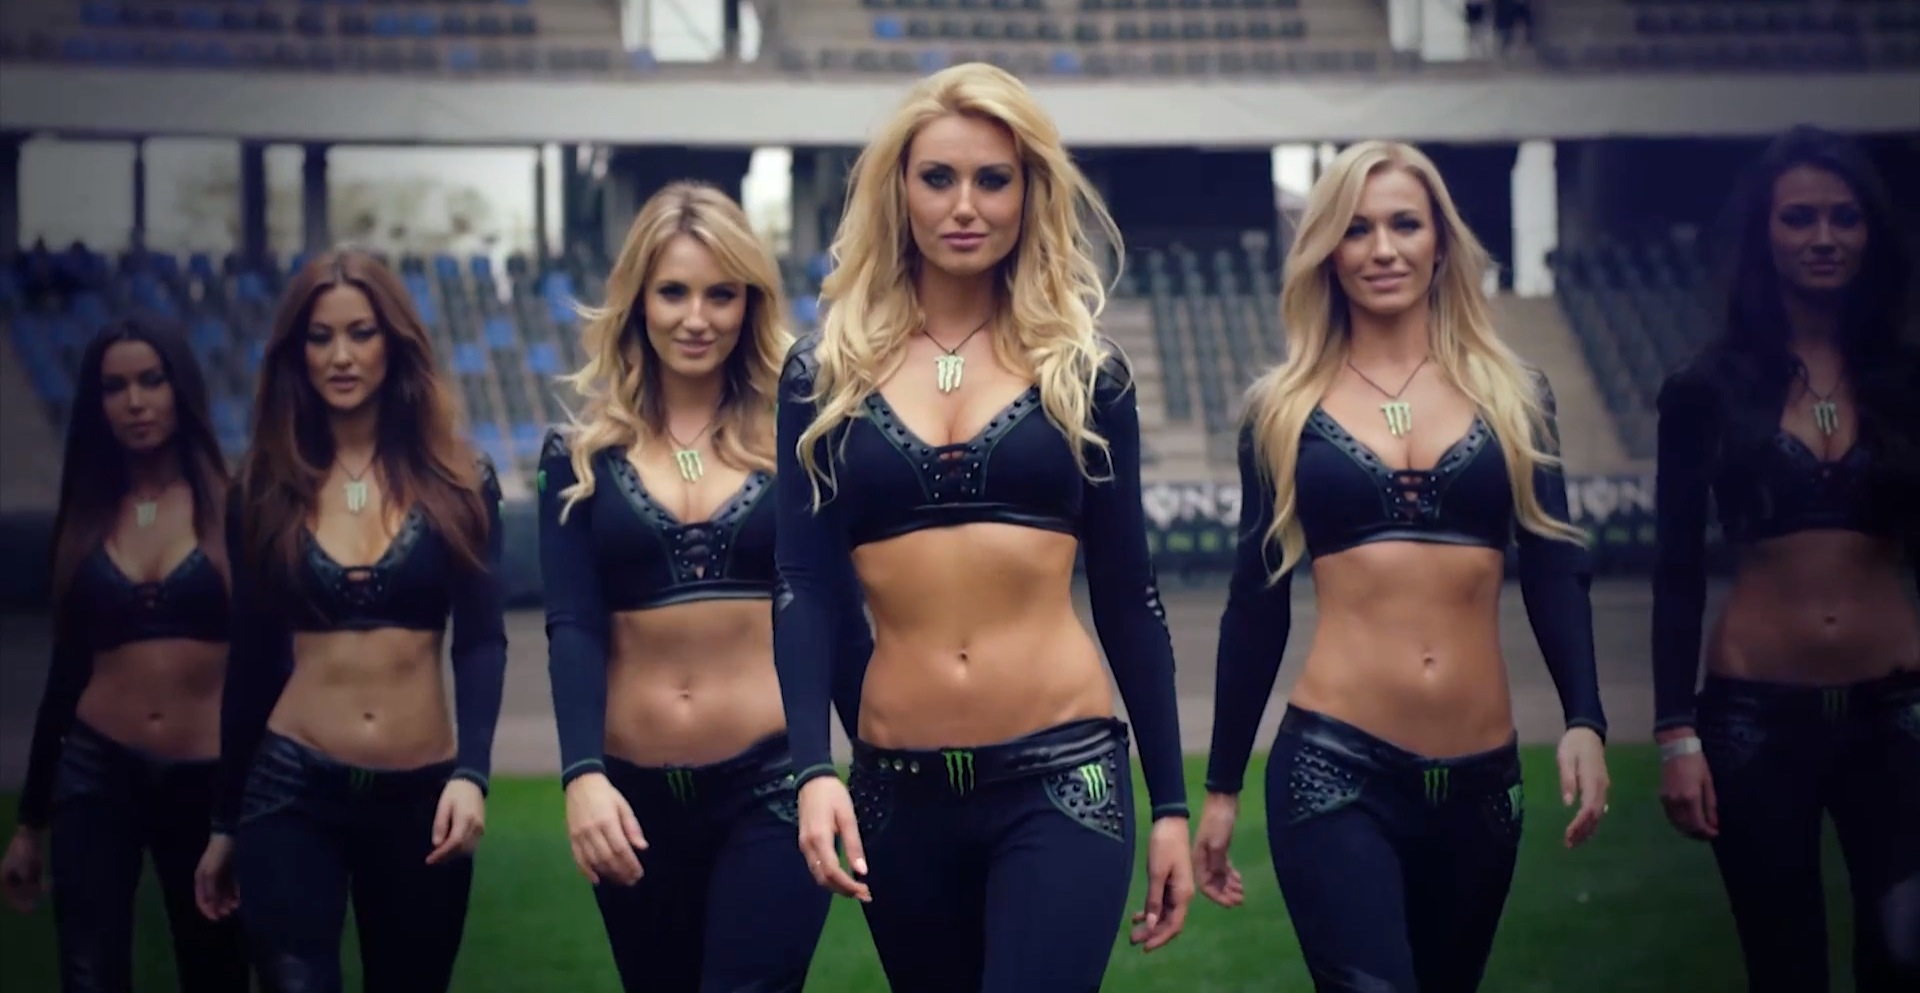 Monster Energy Searching for Its 2015 Hotties: Life Isn't Fair - autoevolution